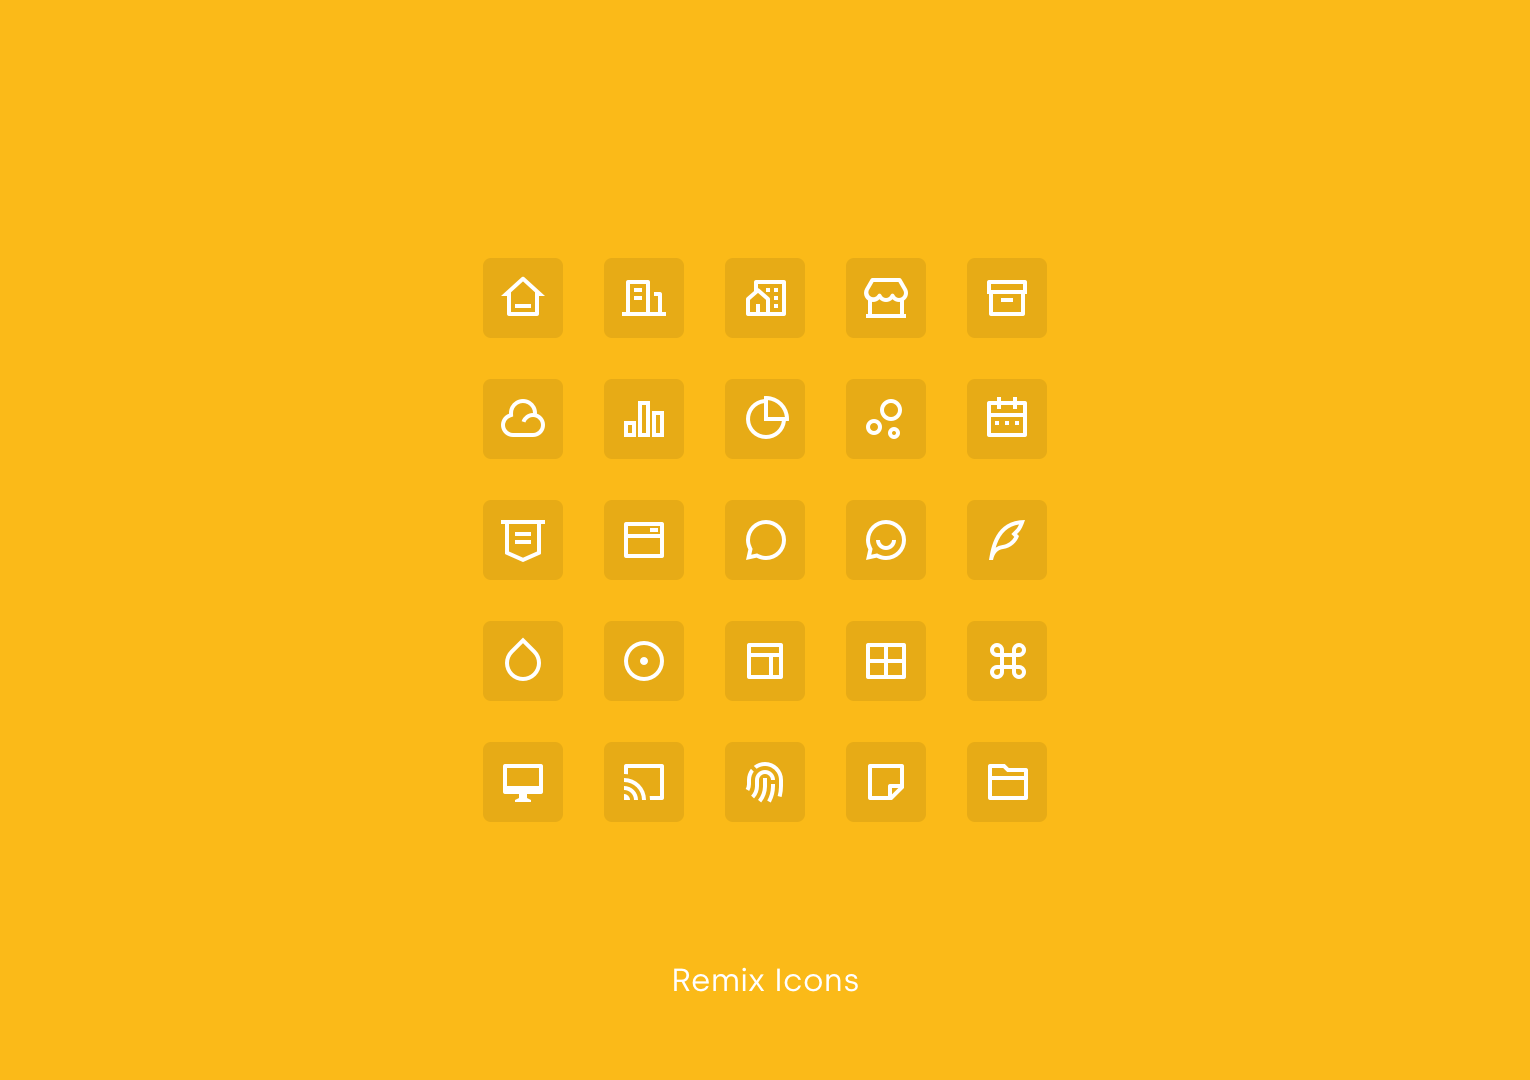 Remix Icons by Jimmy Cheung & Wendy Gao